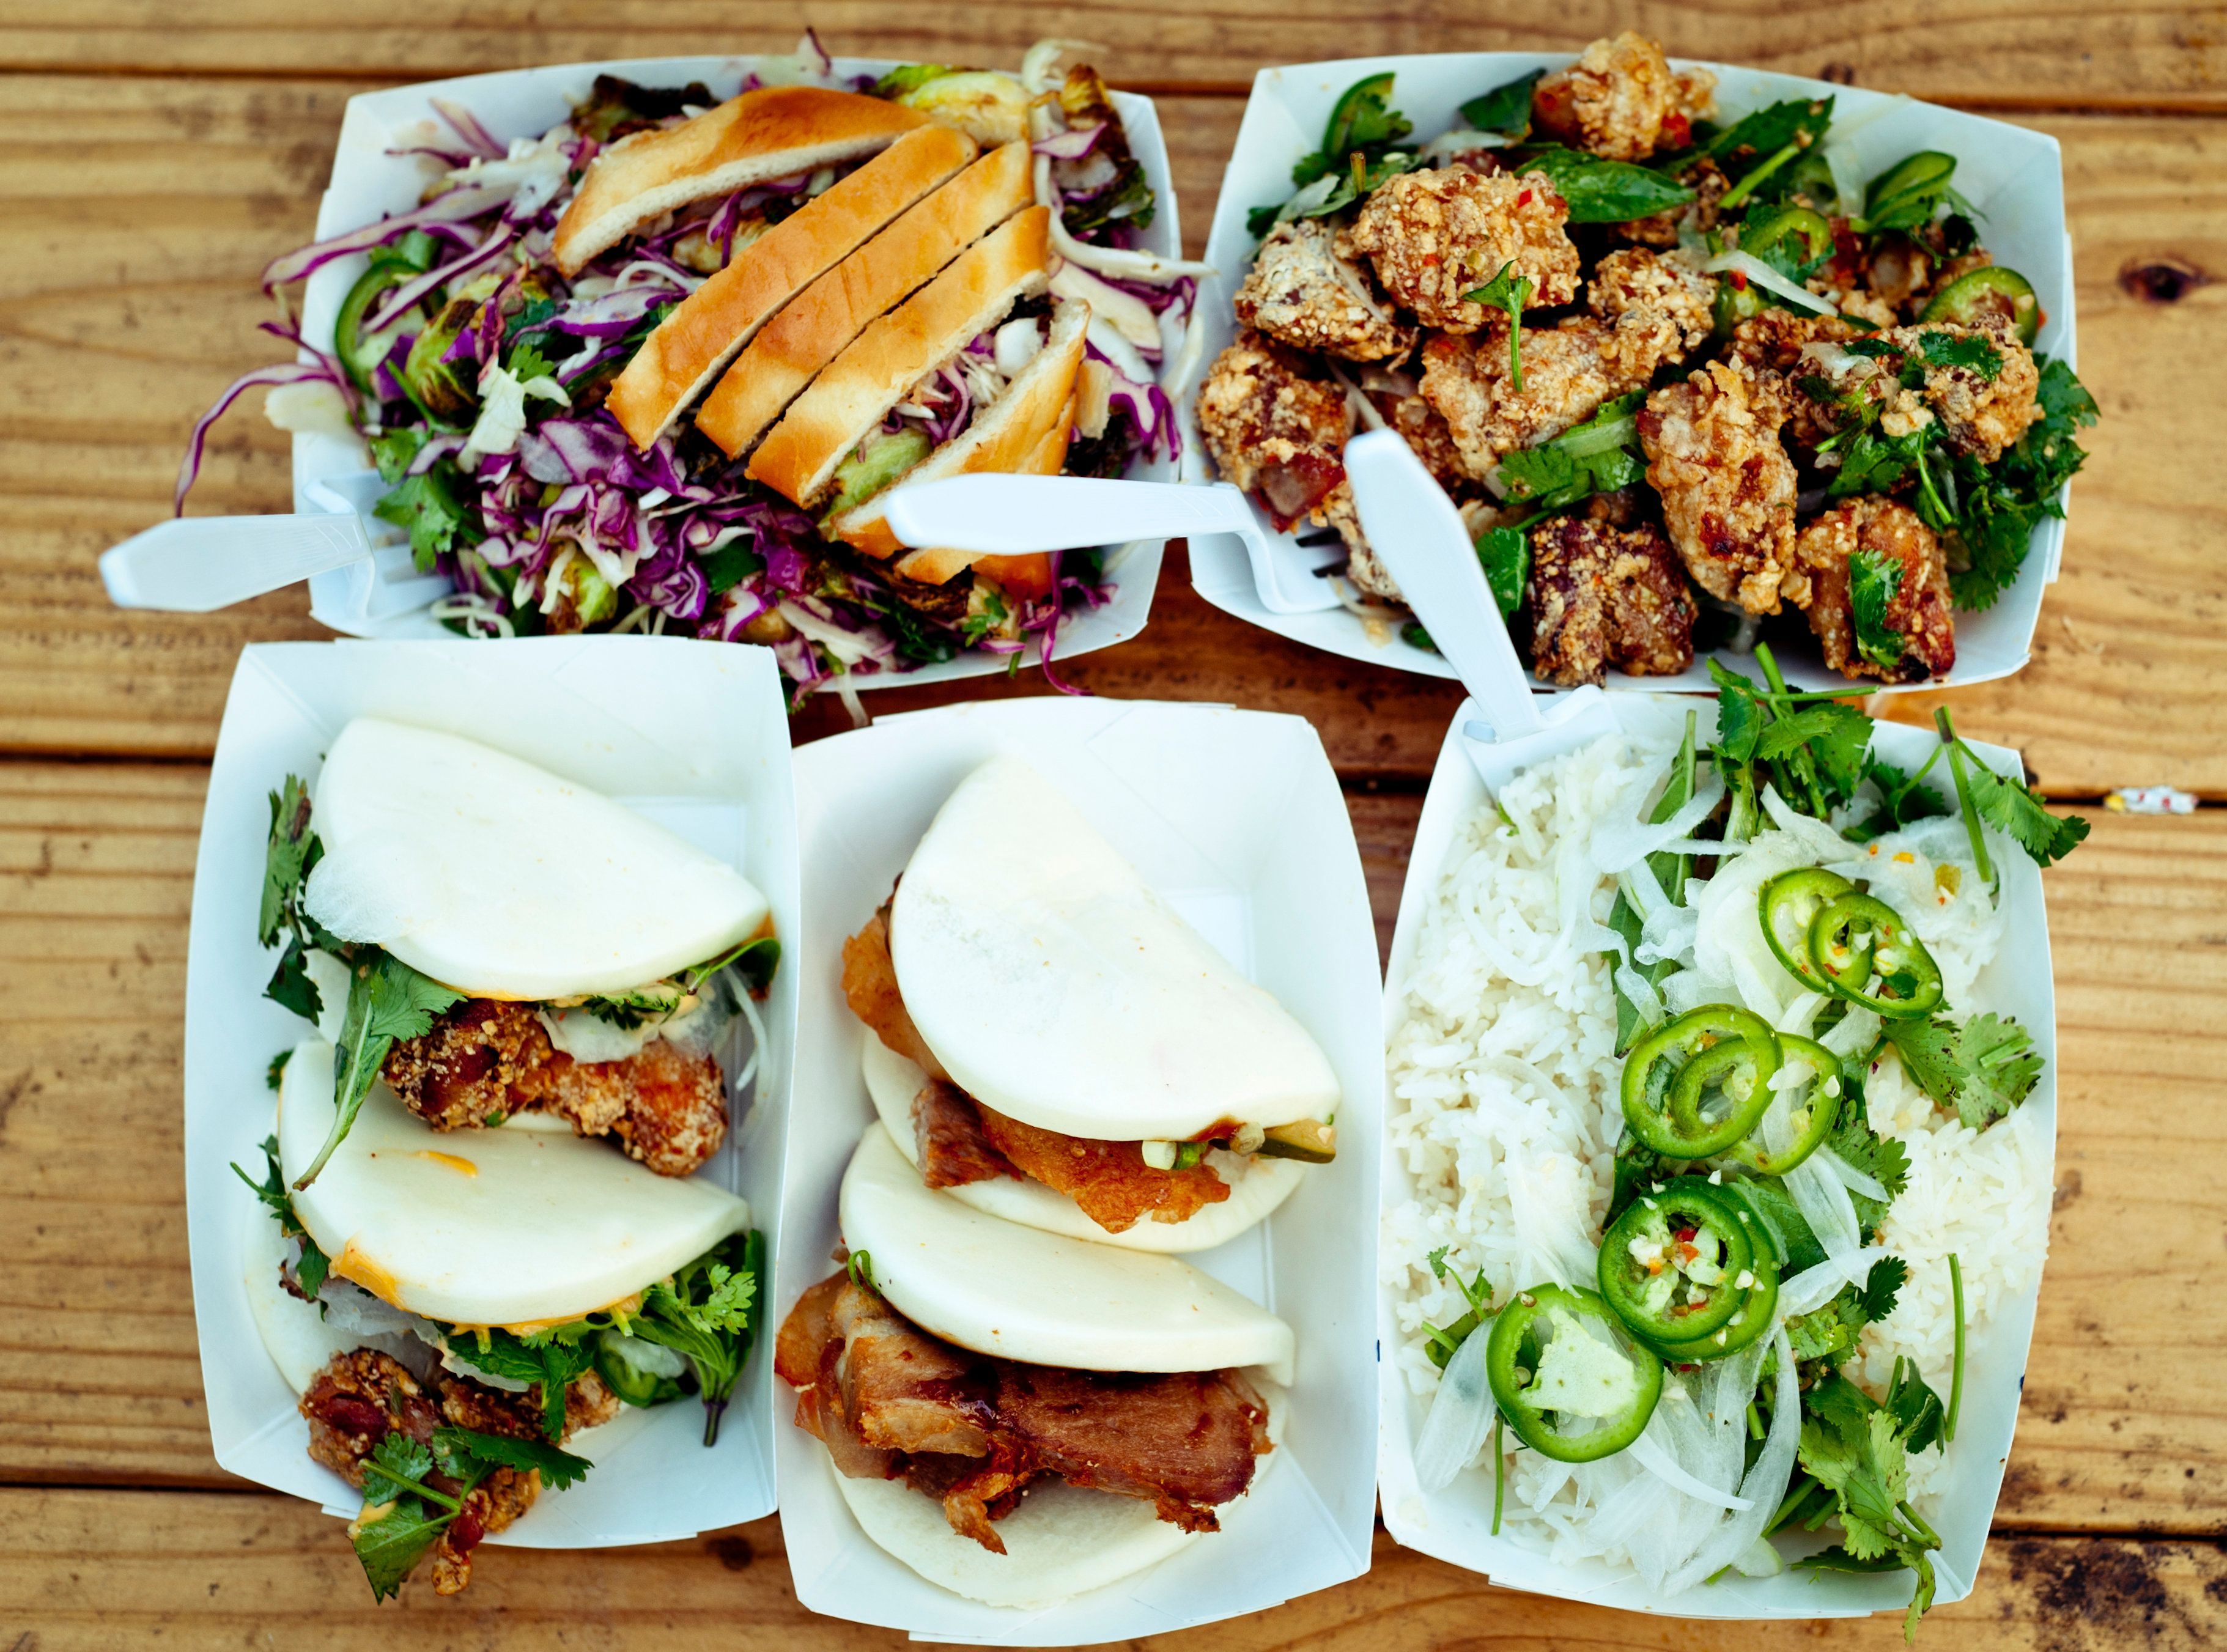 6 Dishes from Texas Korean fusion food truck placed on top of outdoor wooden table.